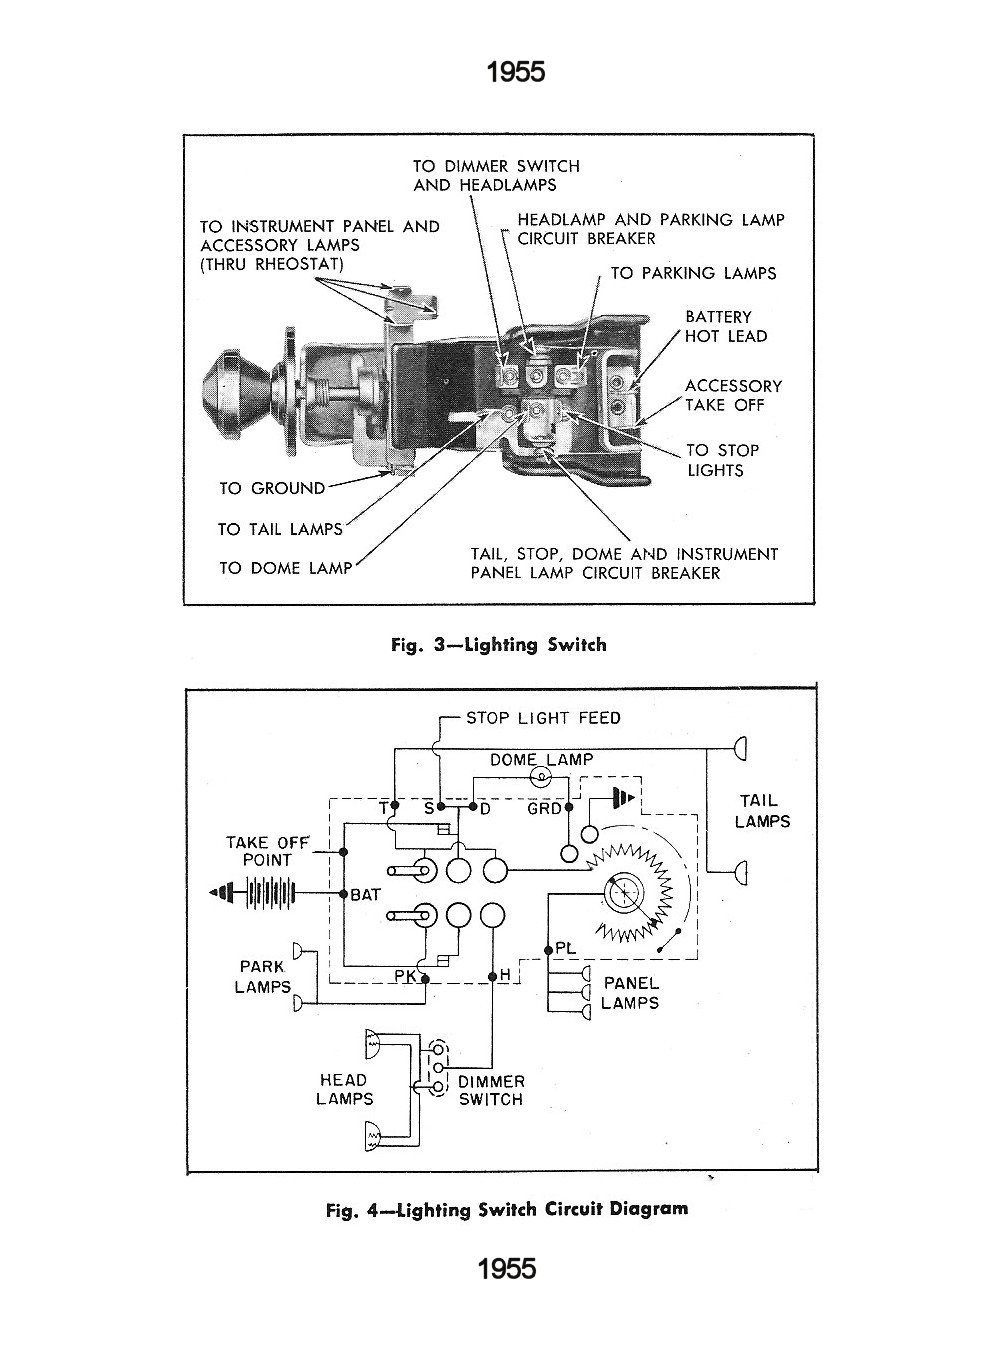 55csm1204a chevy wiring diagrams ignition switch wiring diagram chevy 283 at readyjetset.co